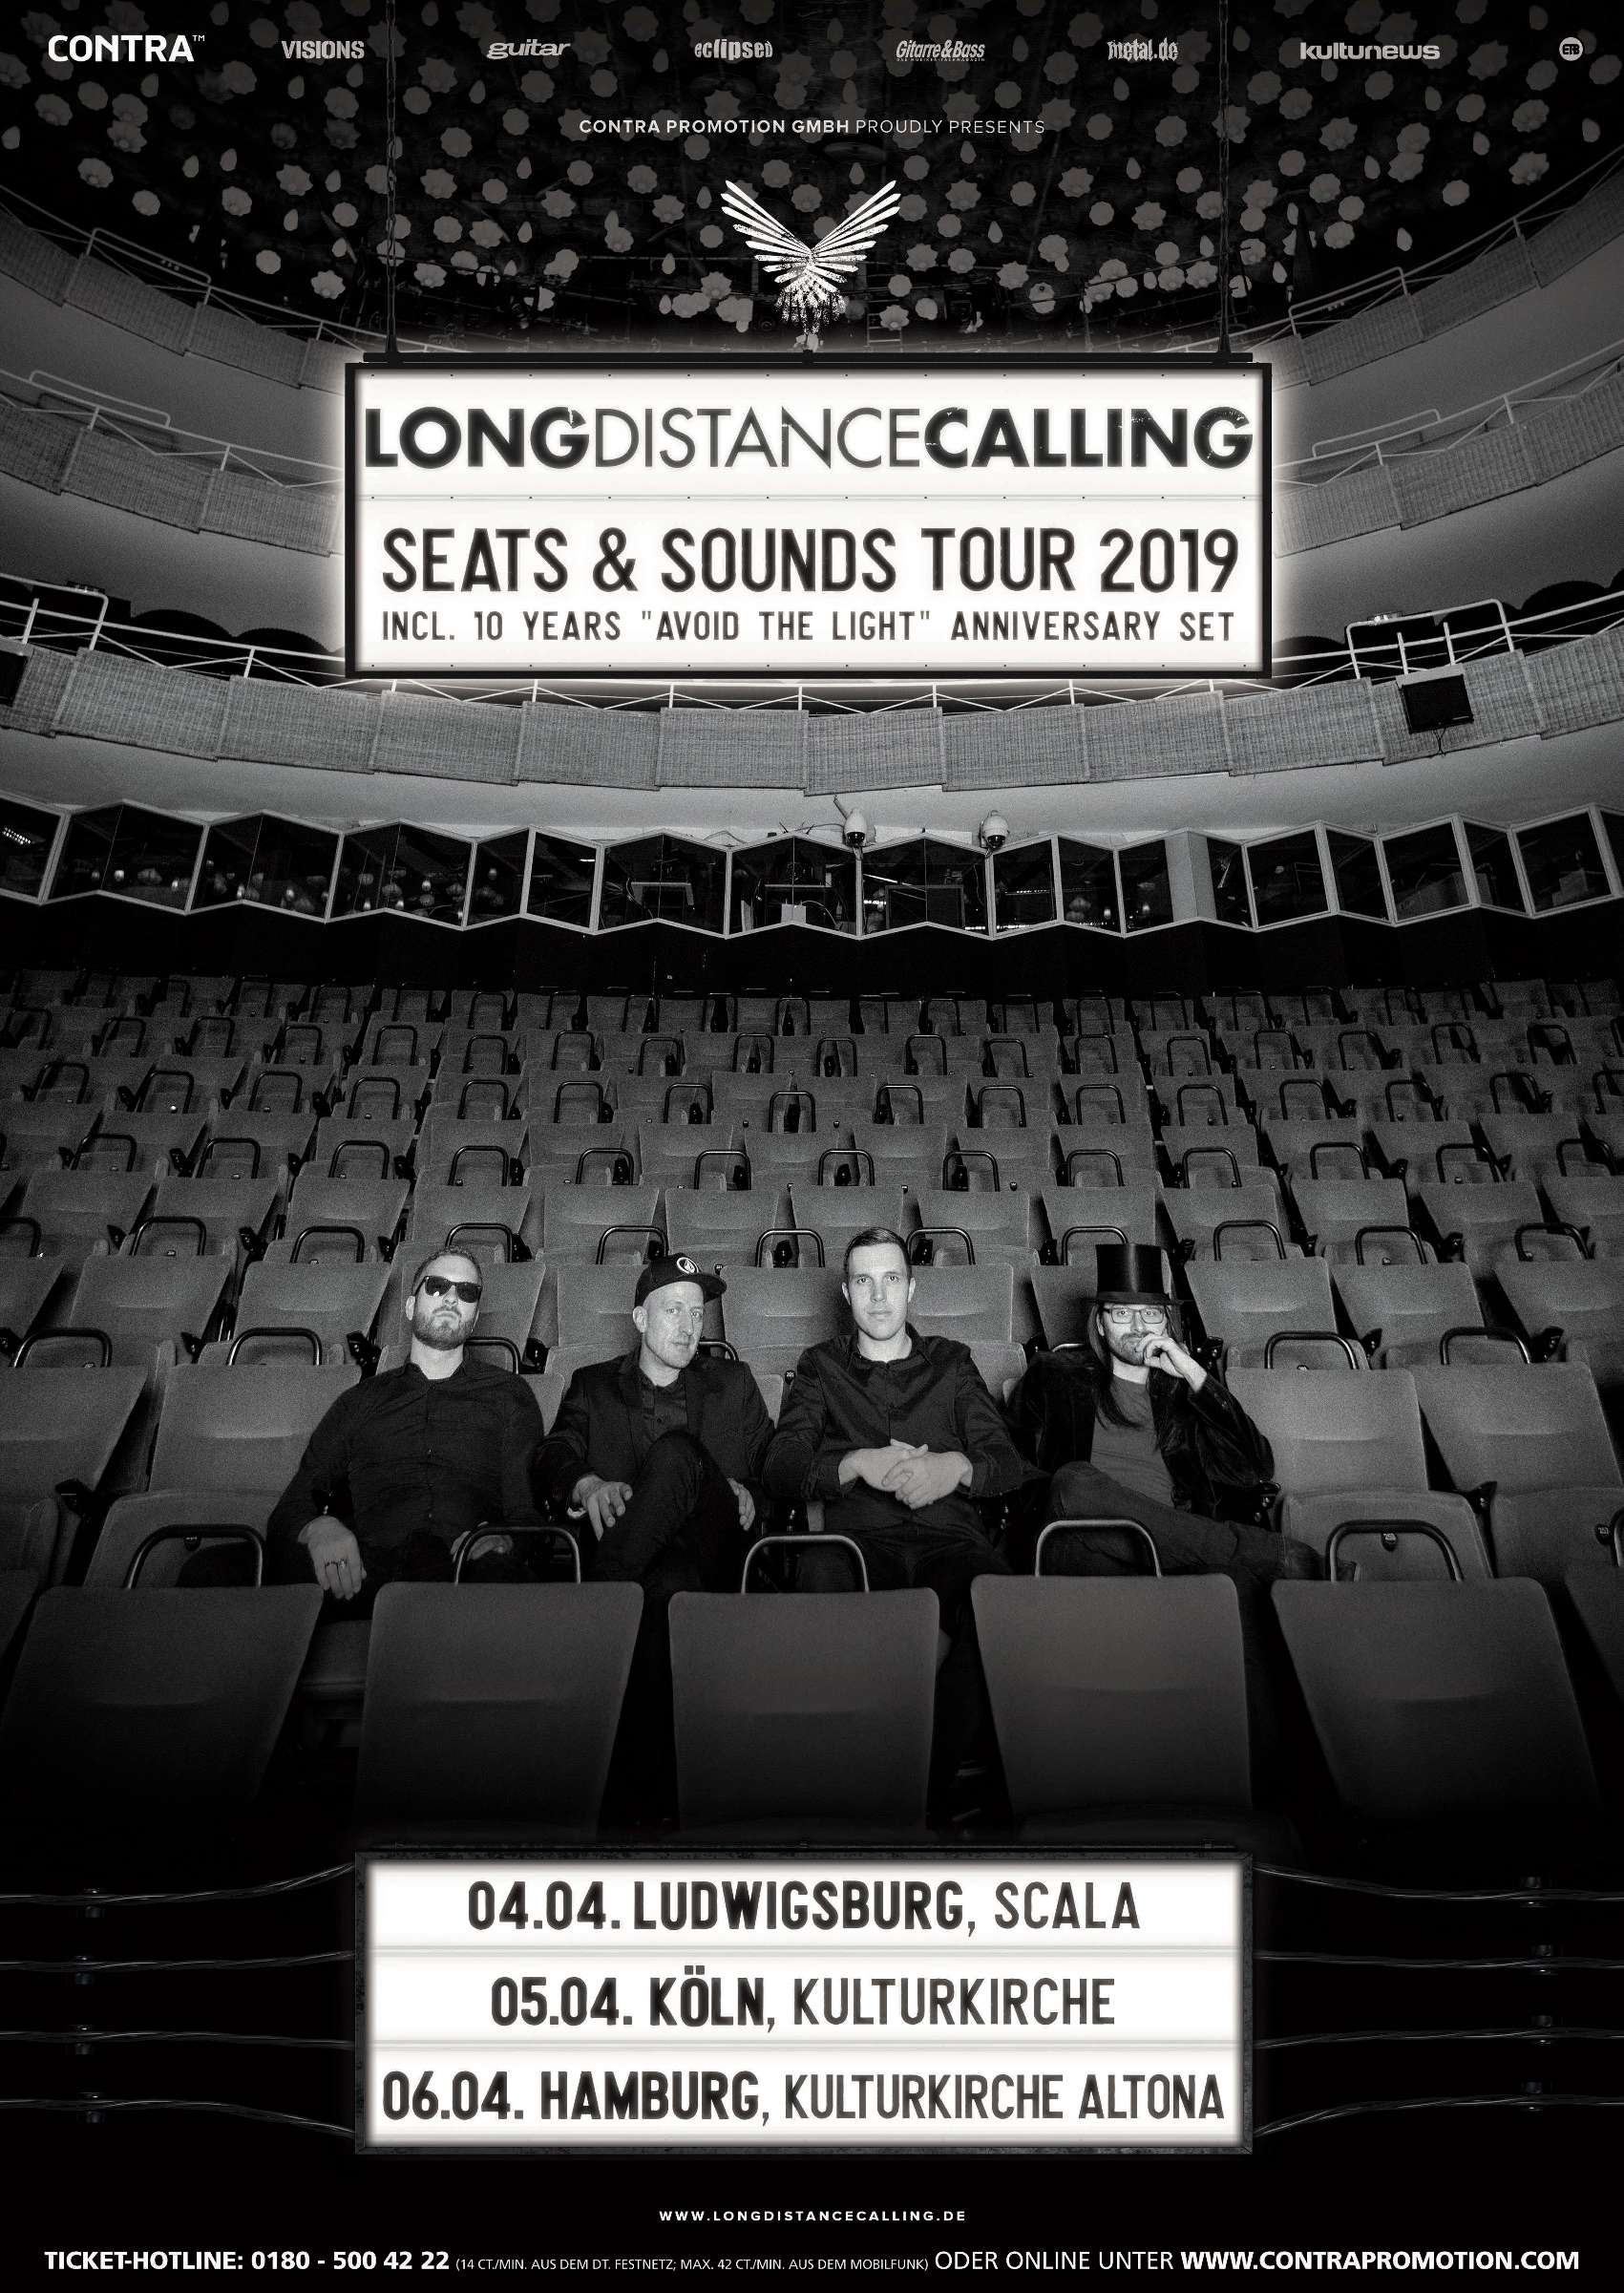 Long Distance Calling Seats and Sounds Tour 2019